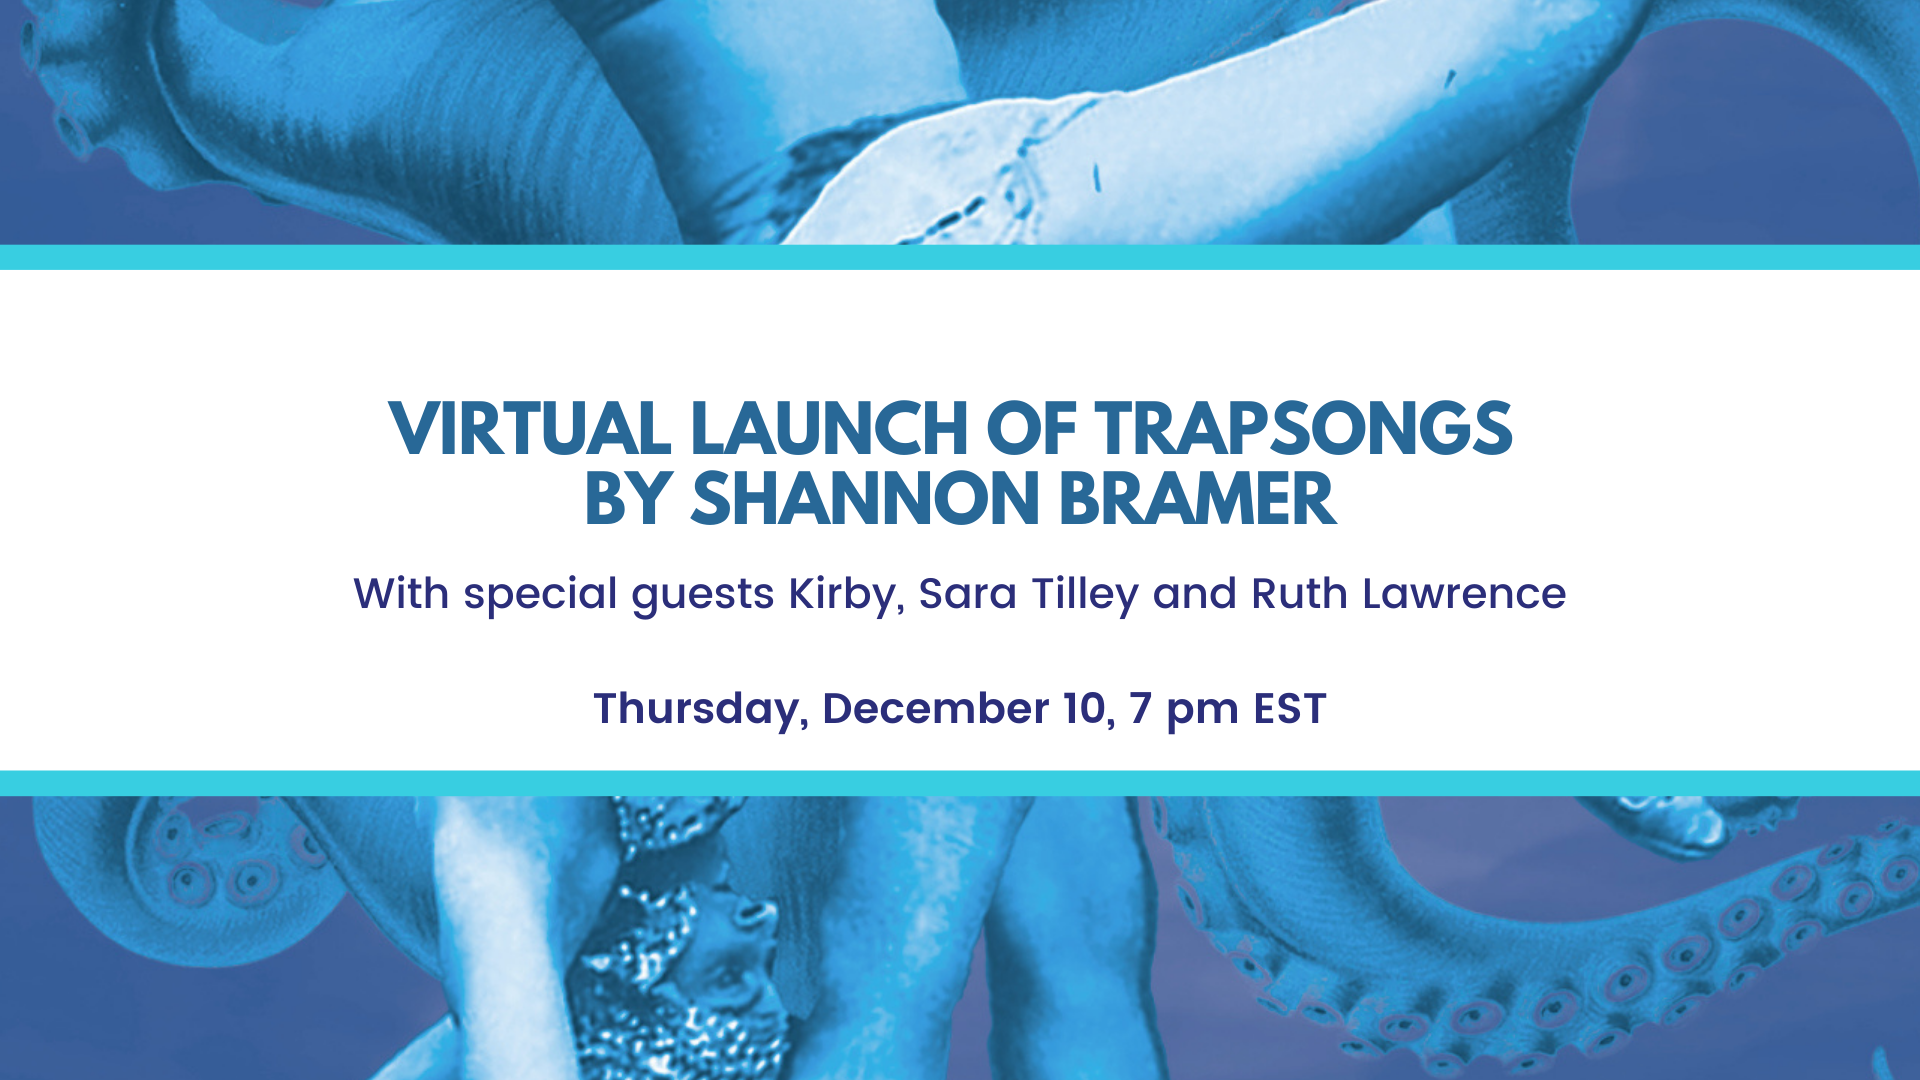 Virtual Launch of Trapsongs by Shannon Bramer